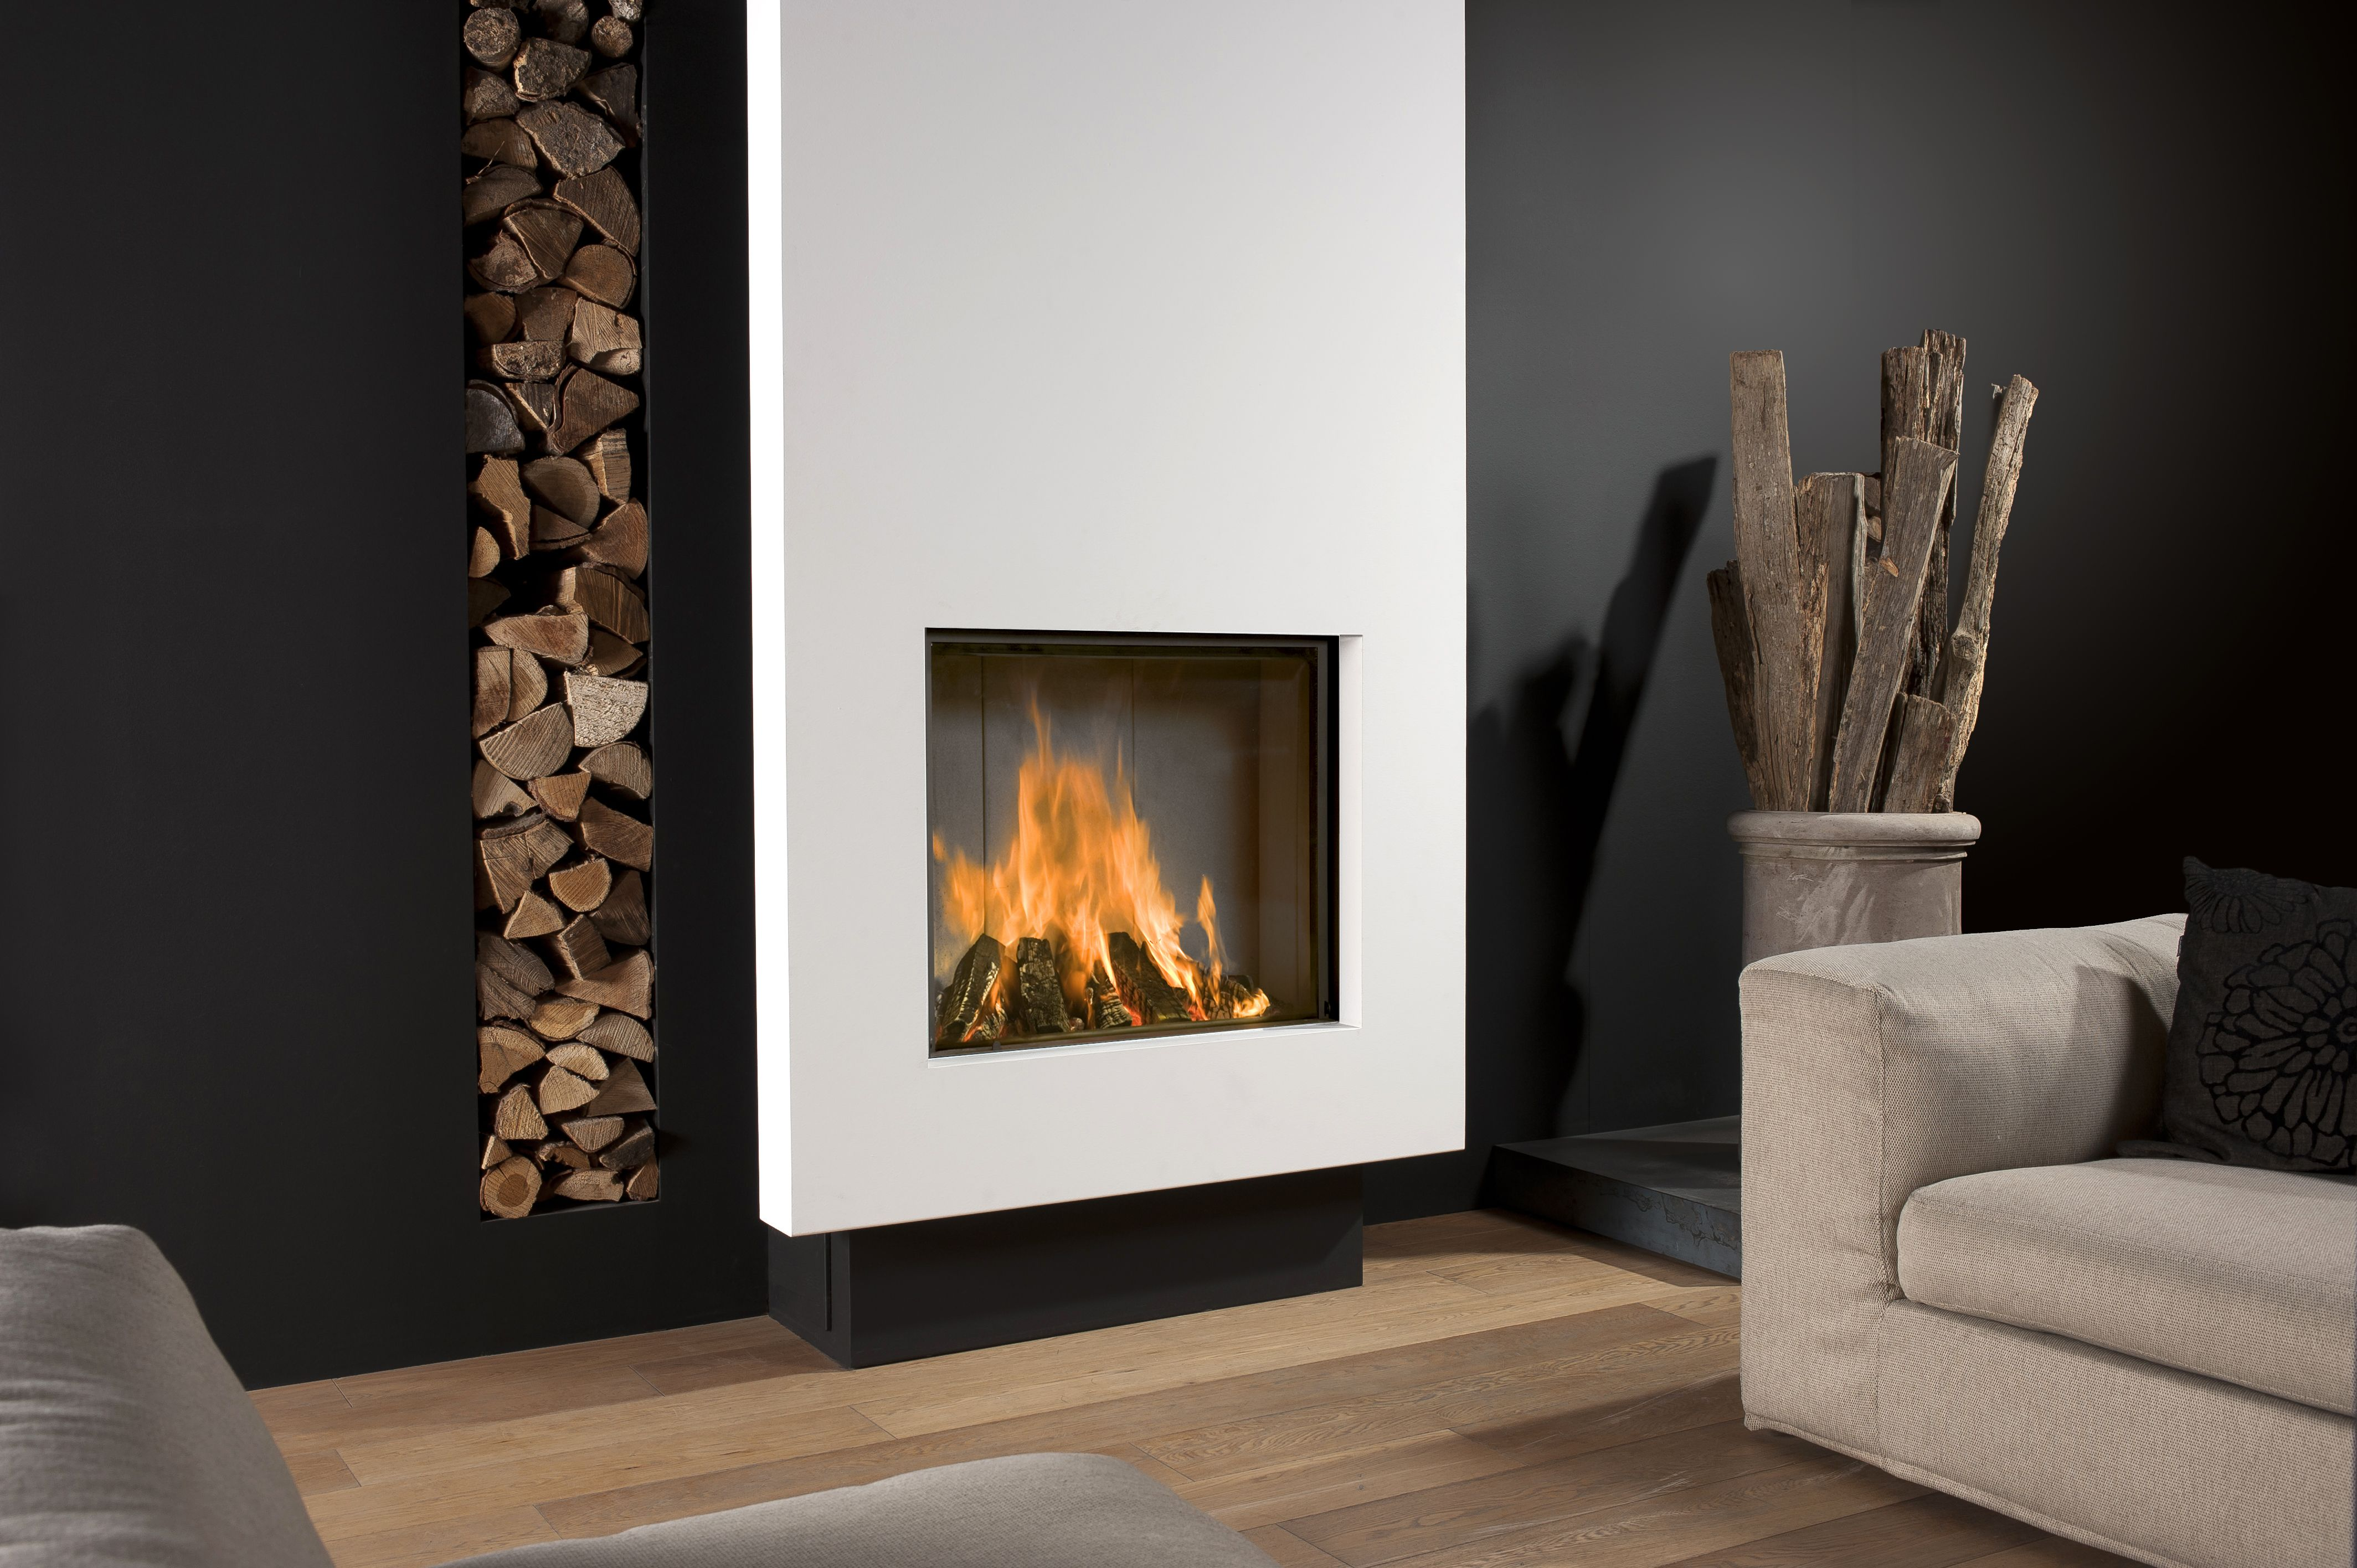 Product information for the Derby Large 3 Urban Fireplace.